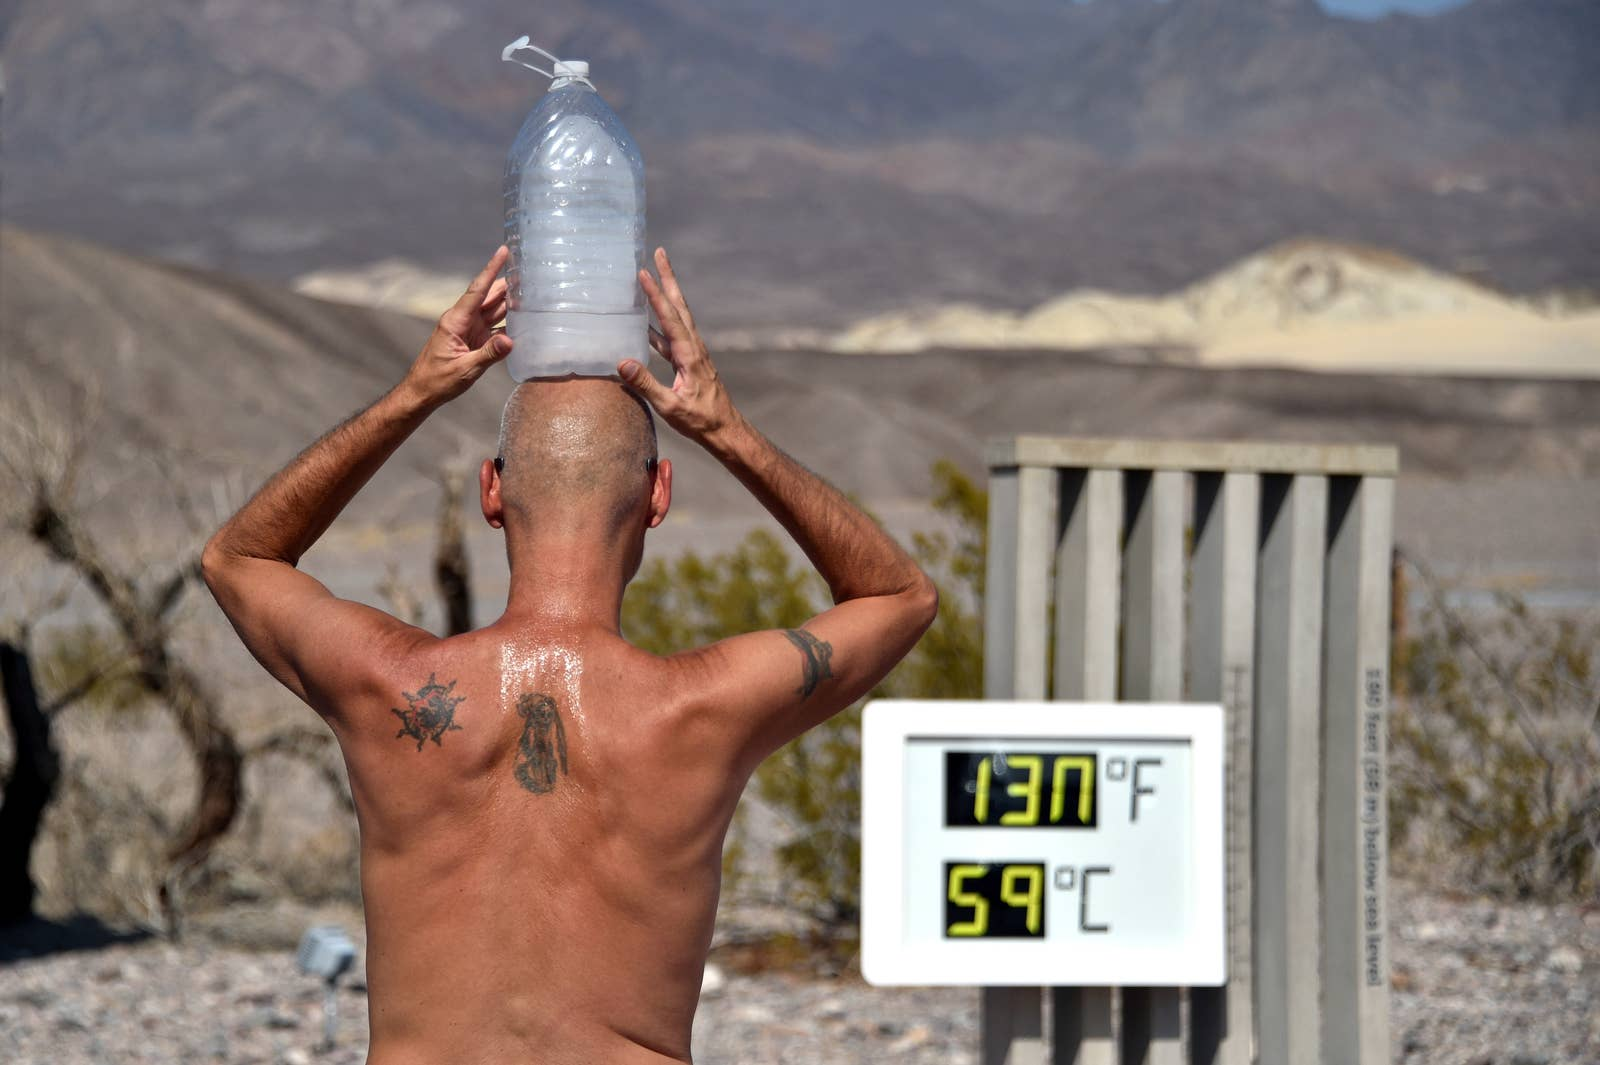 """A shirtless man sweats with a frozen gallon of water on his head, standing in front of a thermometer that reads """"130 degrees Fahrenheit, 59 degrees celsius"""""""